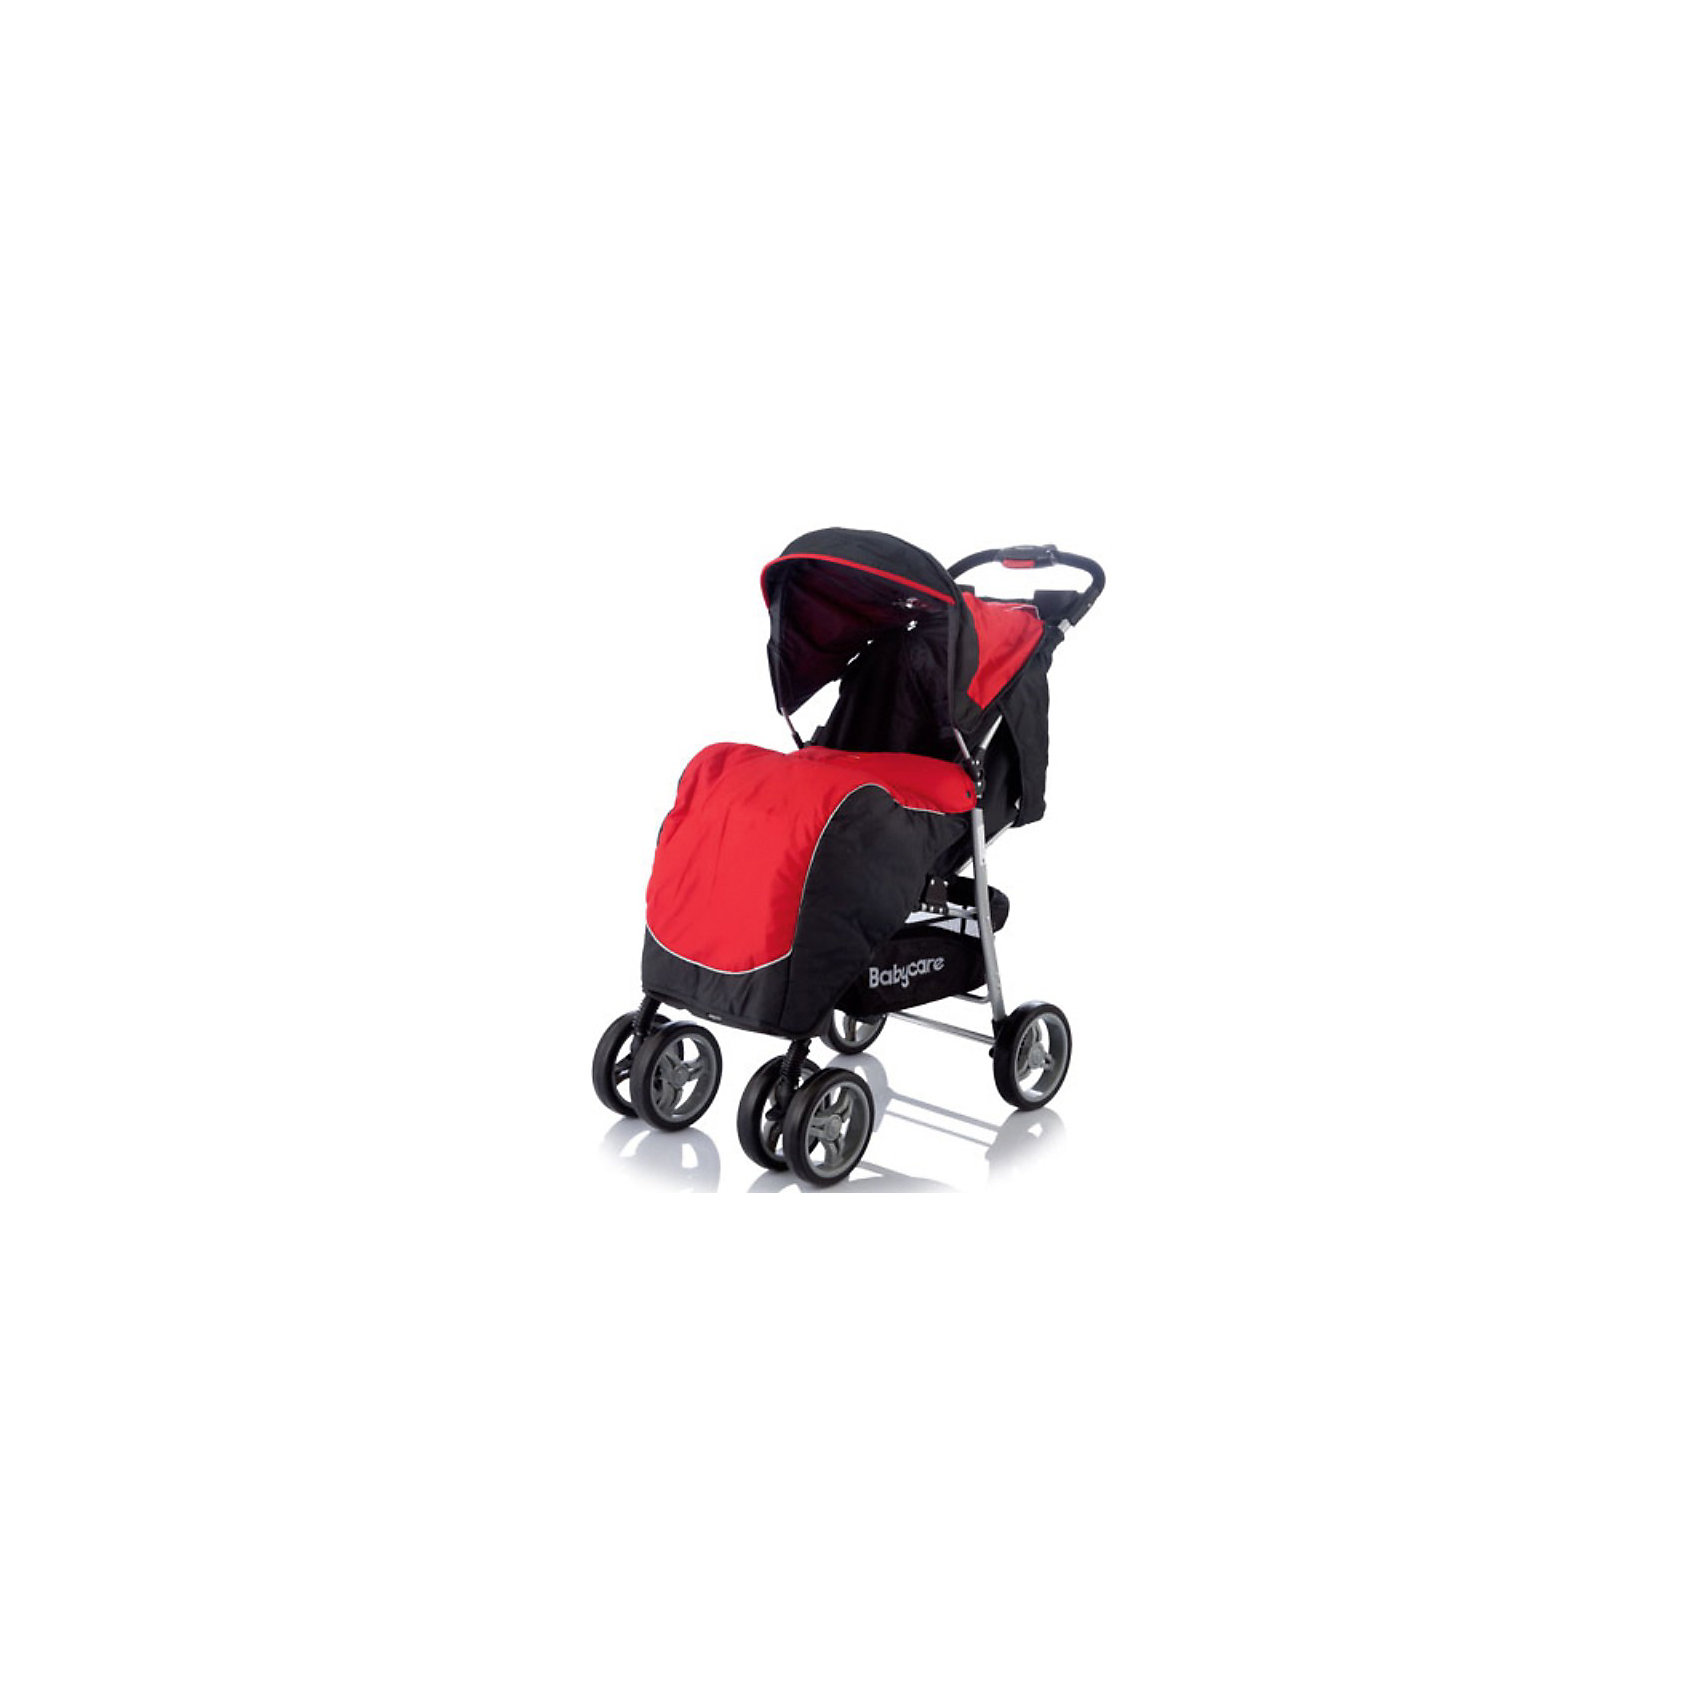 ����������� ������� Voyager, Baby Care, �������